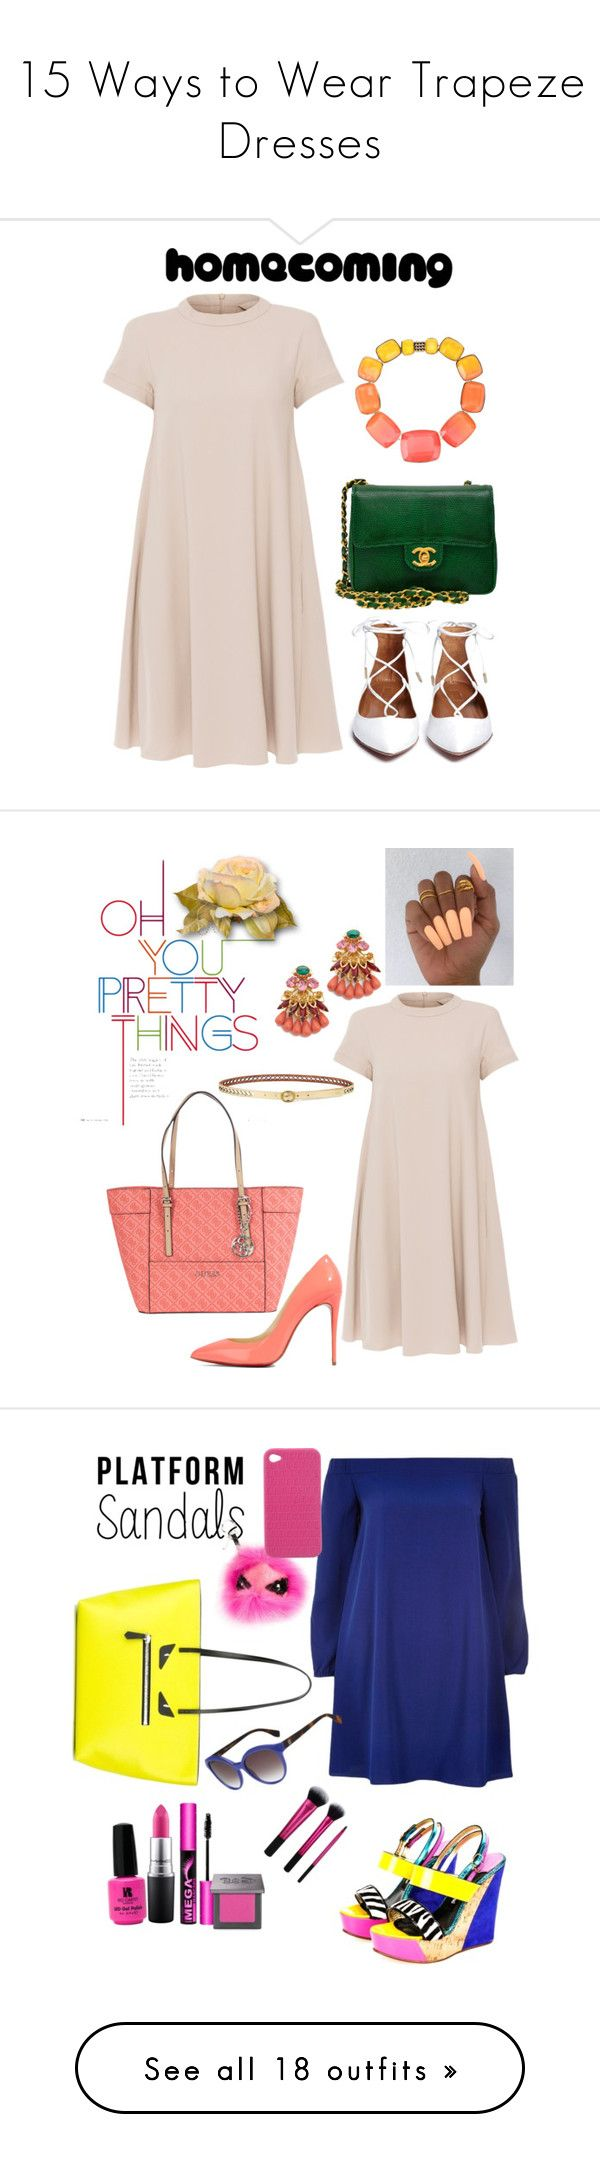 """""""15 Ways to Wear Trapeze Dresses"""" by polyvore-editorial ❤ liked on Polyvore featuring waystowear, trapezedresses, 'S MaxMara, Chanel, Elie Saab, Elizabeth Cole, Christian Louboutin, Lauren Ralph Lauren, GUESS and dresses"""